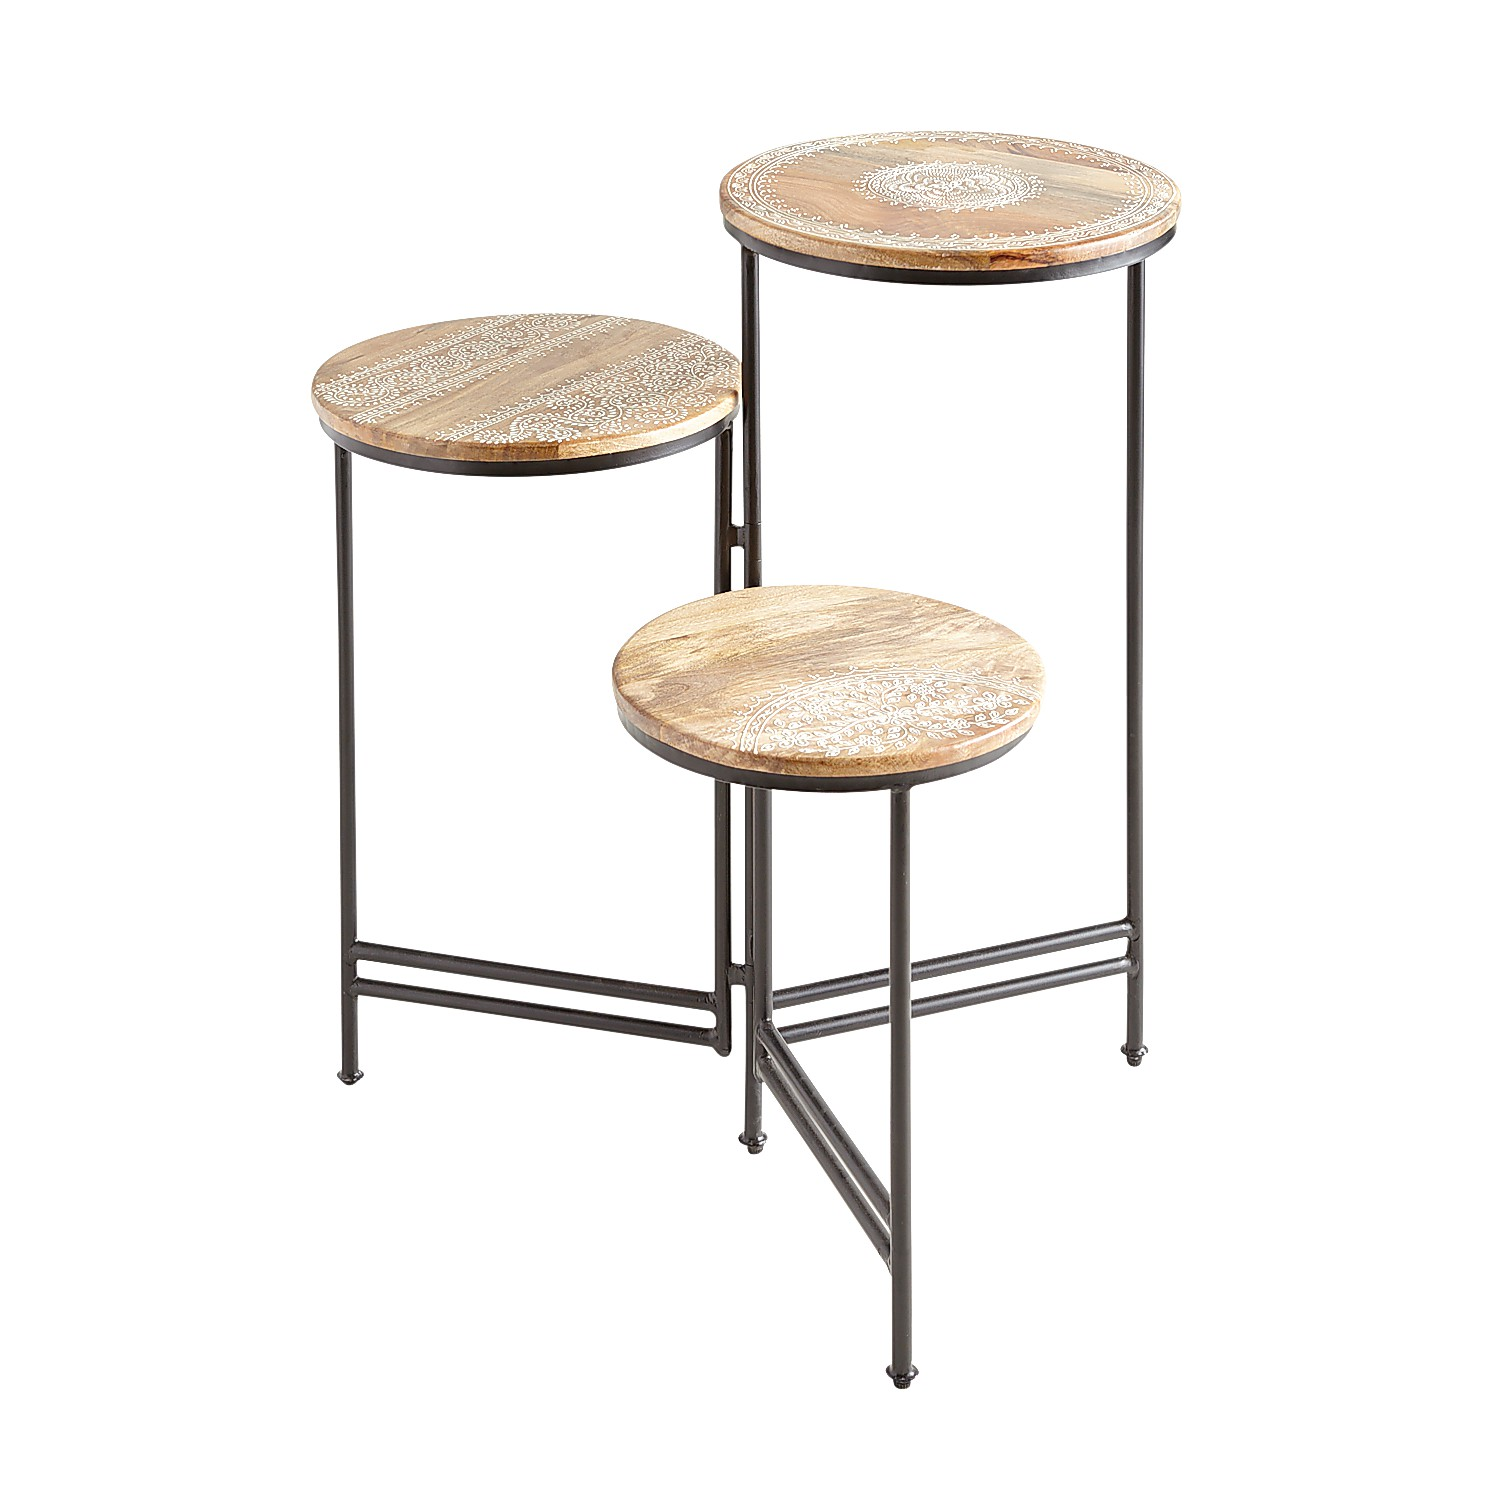 Henna 3-Tier Accent Table